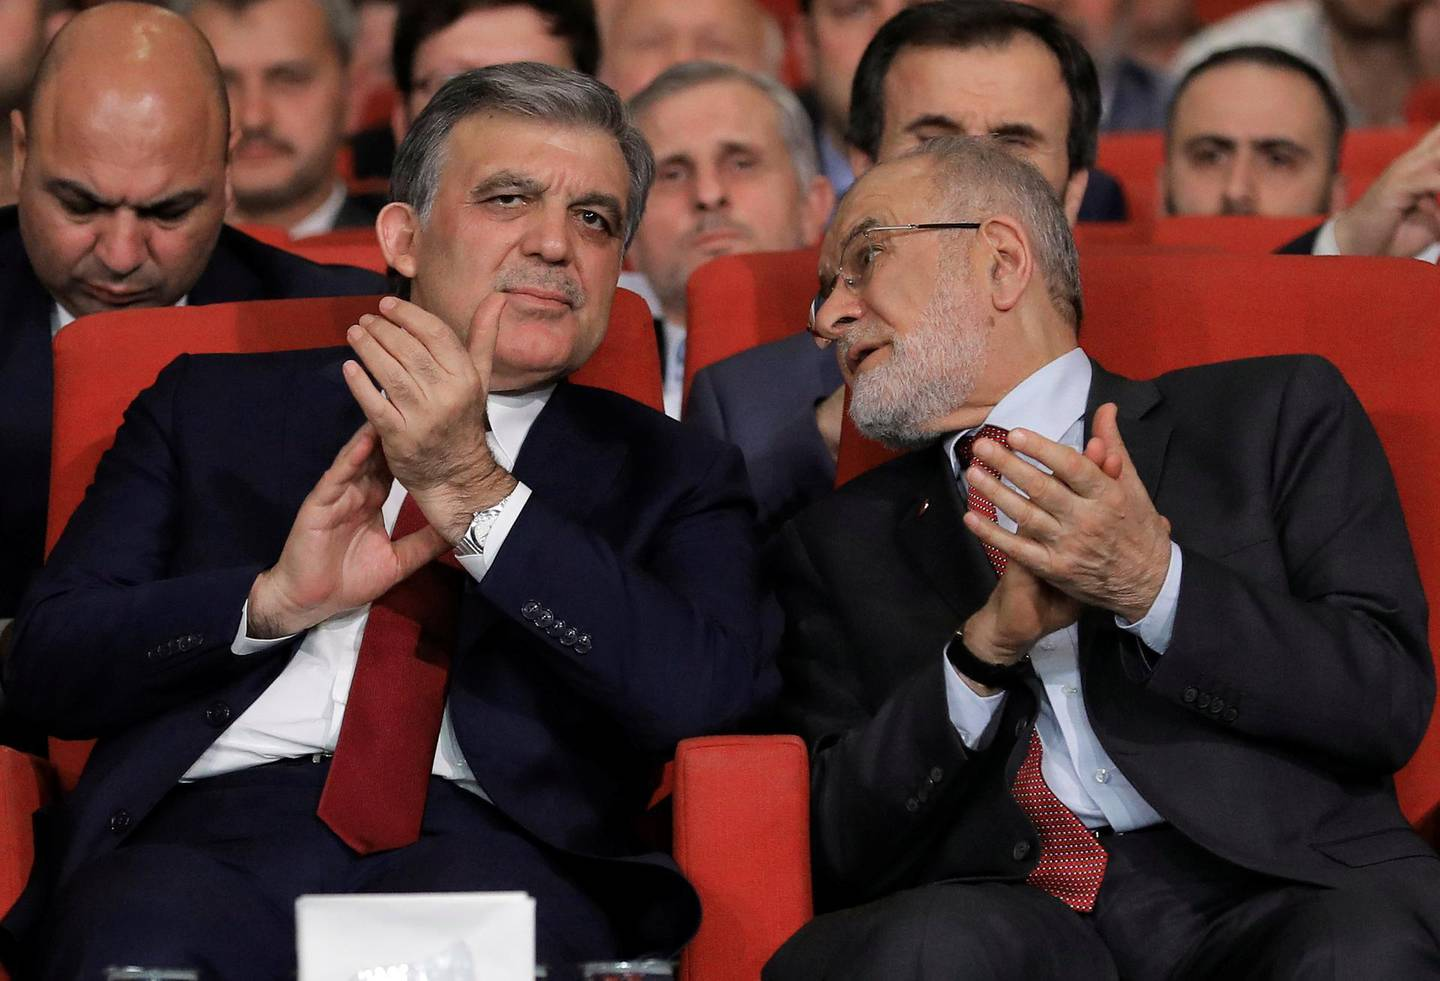 Former Turkish President Abdullah Gul is seen with Saadet Party leader Temel Karamollaoglu during a ceremony in Istanbul, Turkey April 24, 2018. Picture taken April 24, 2018. REUTERS/Huseyin Aldemir